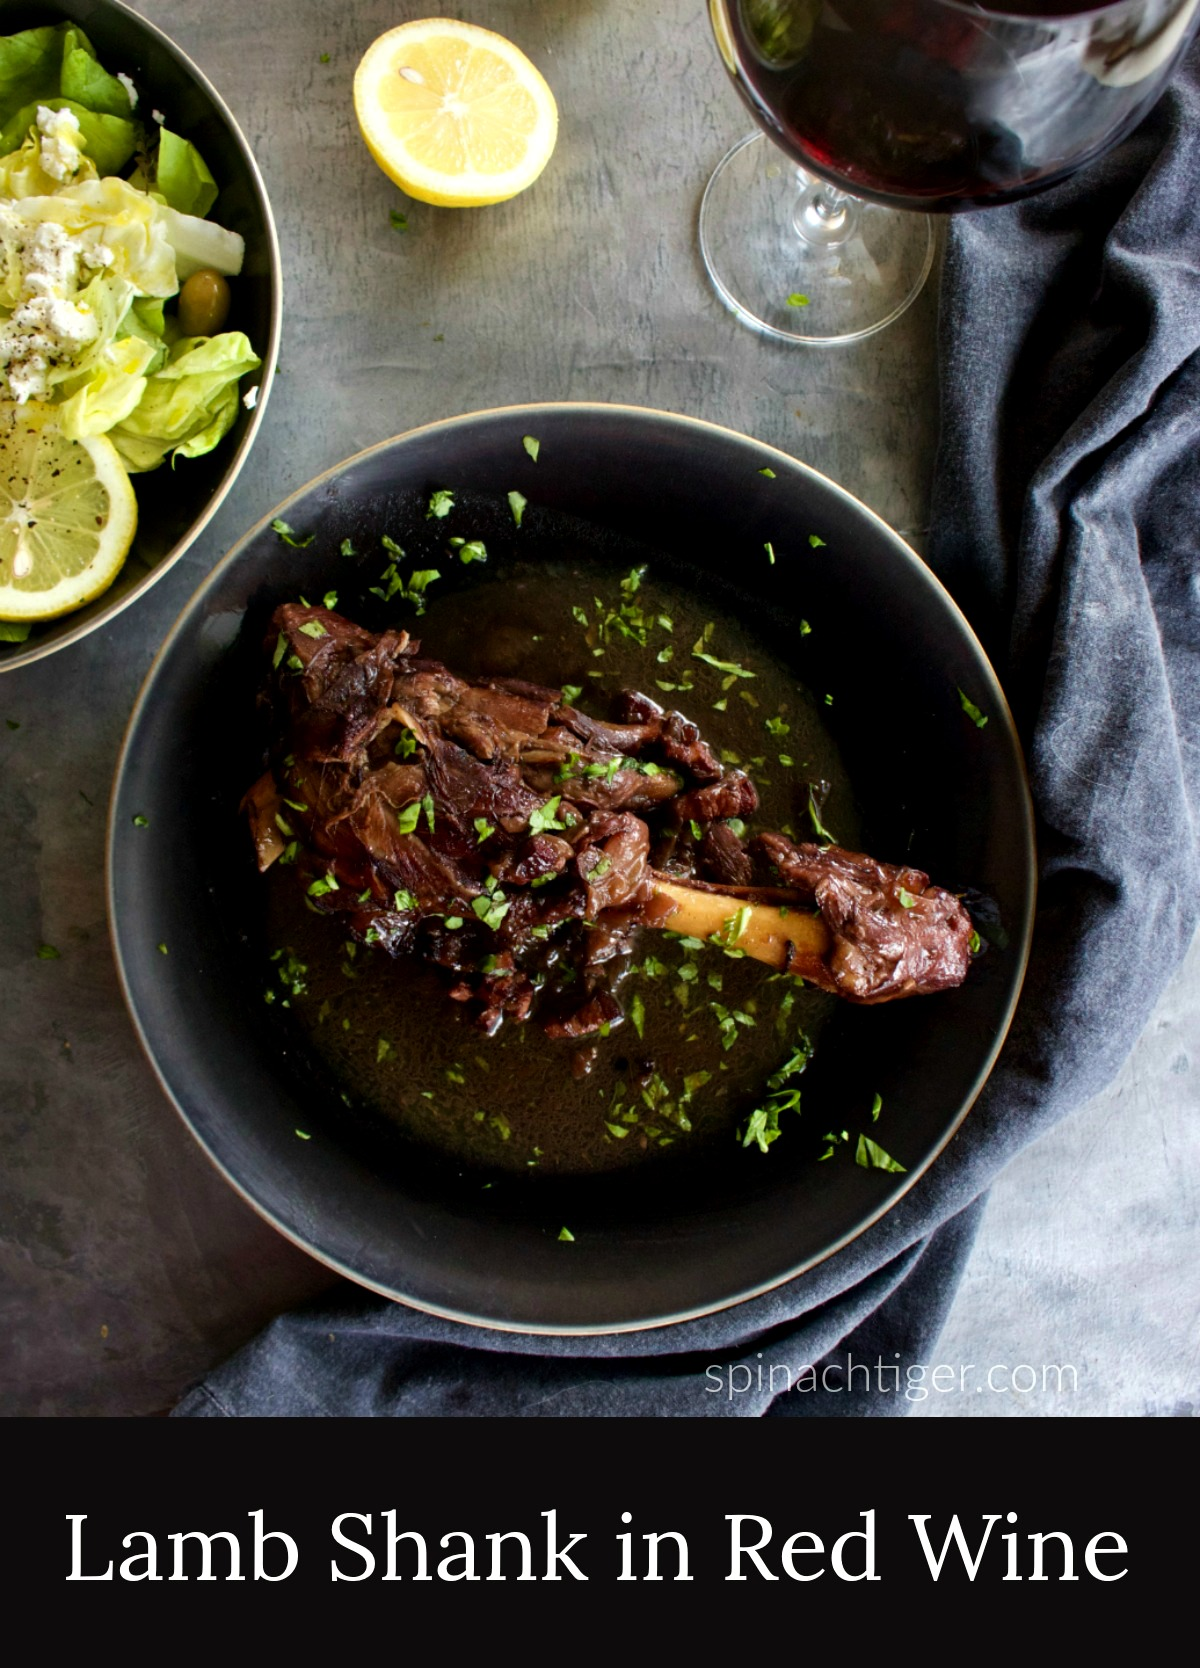 Red Wine Braised Lamb Shanks from Spinach Tiger (slow cooker or dutch oven)